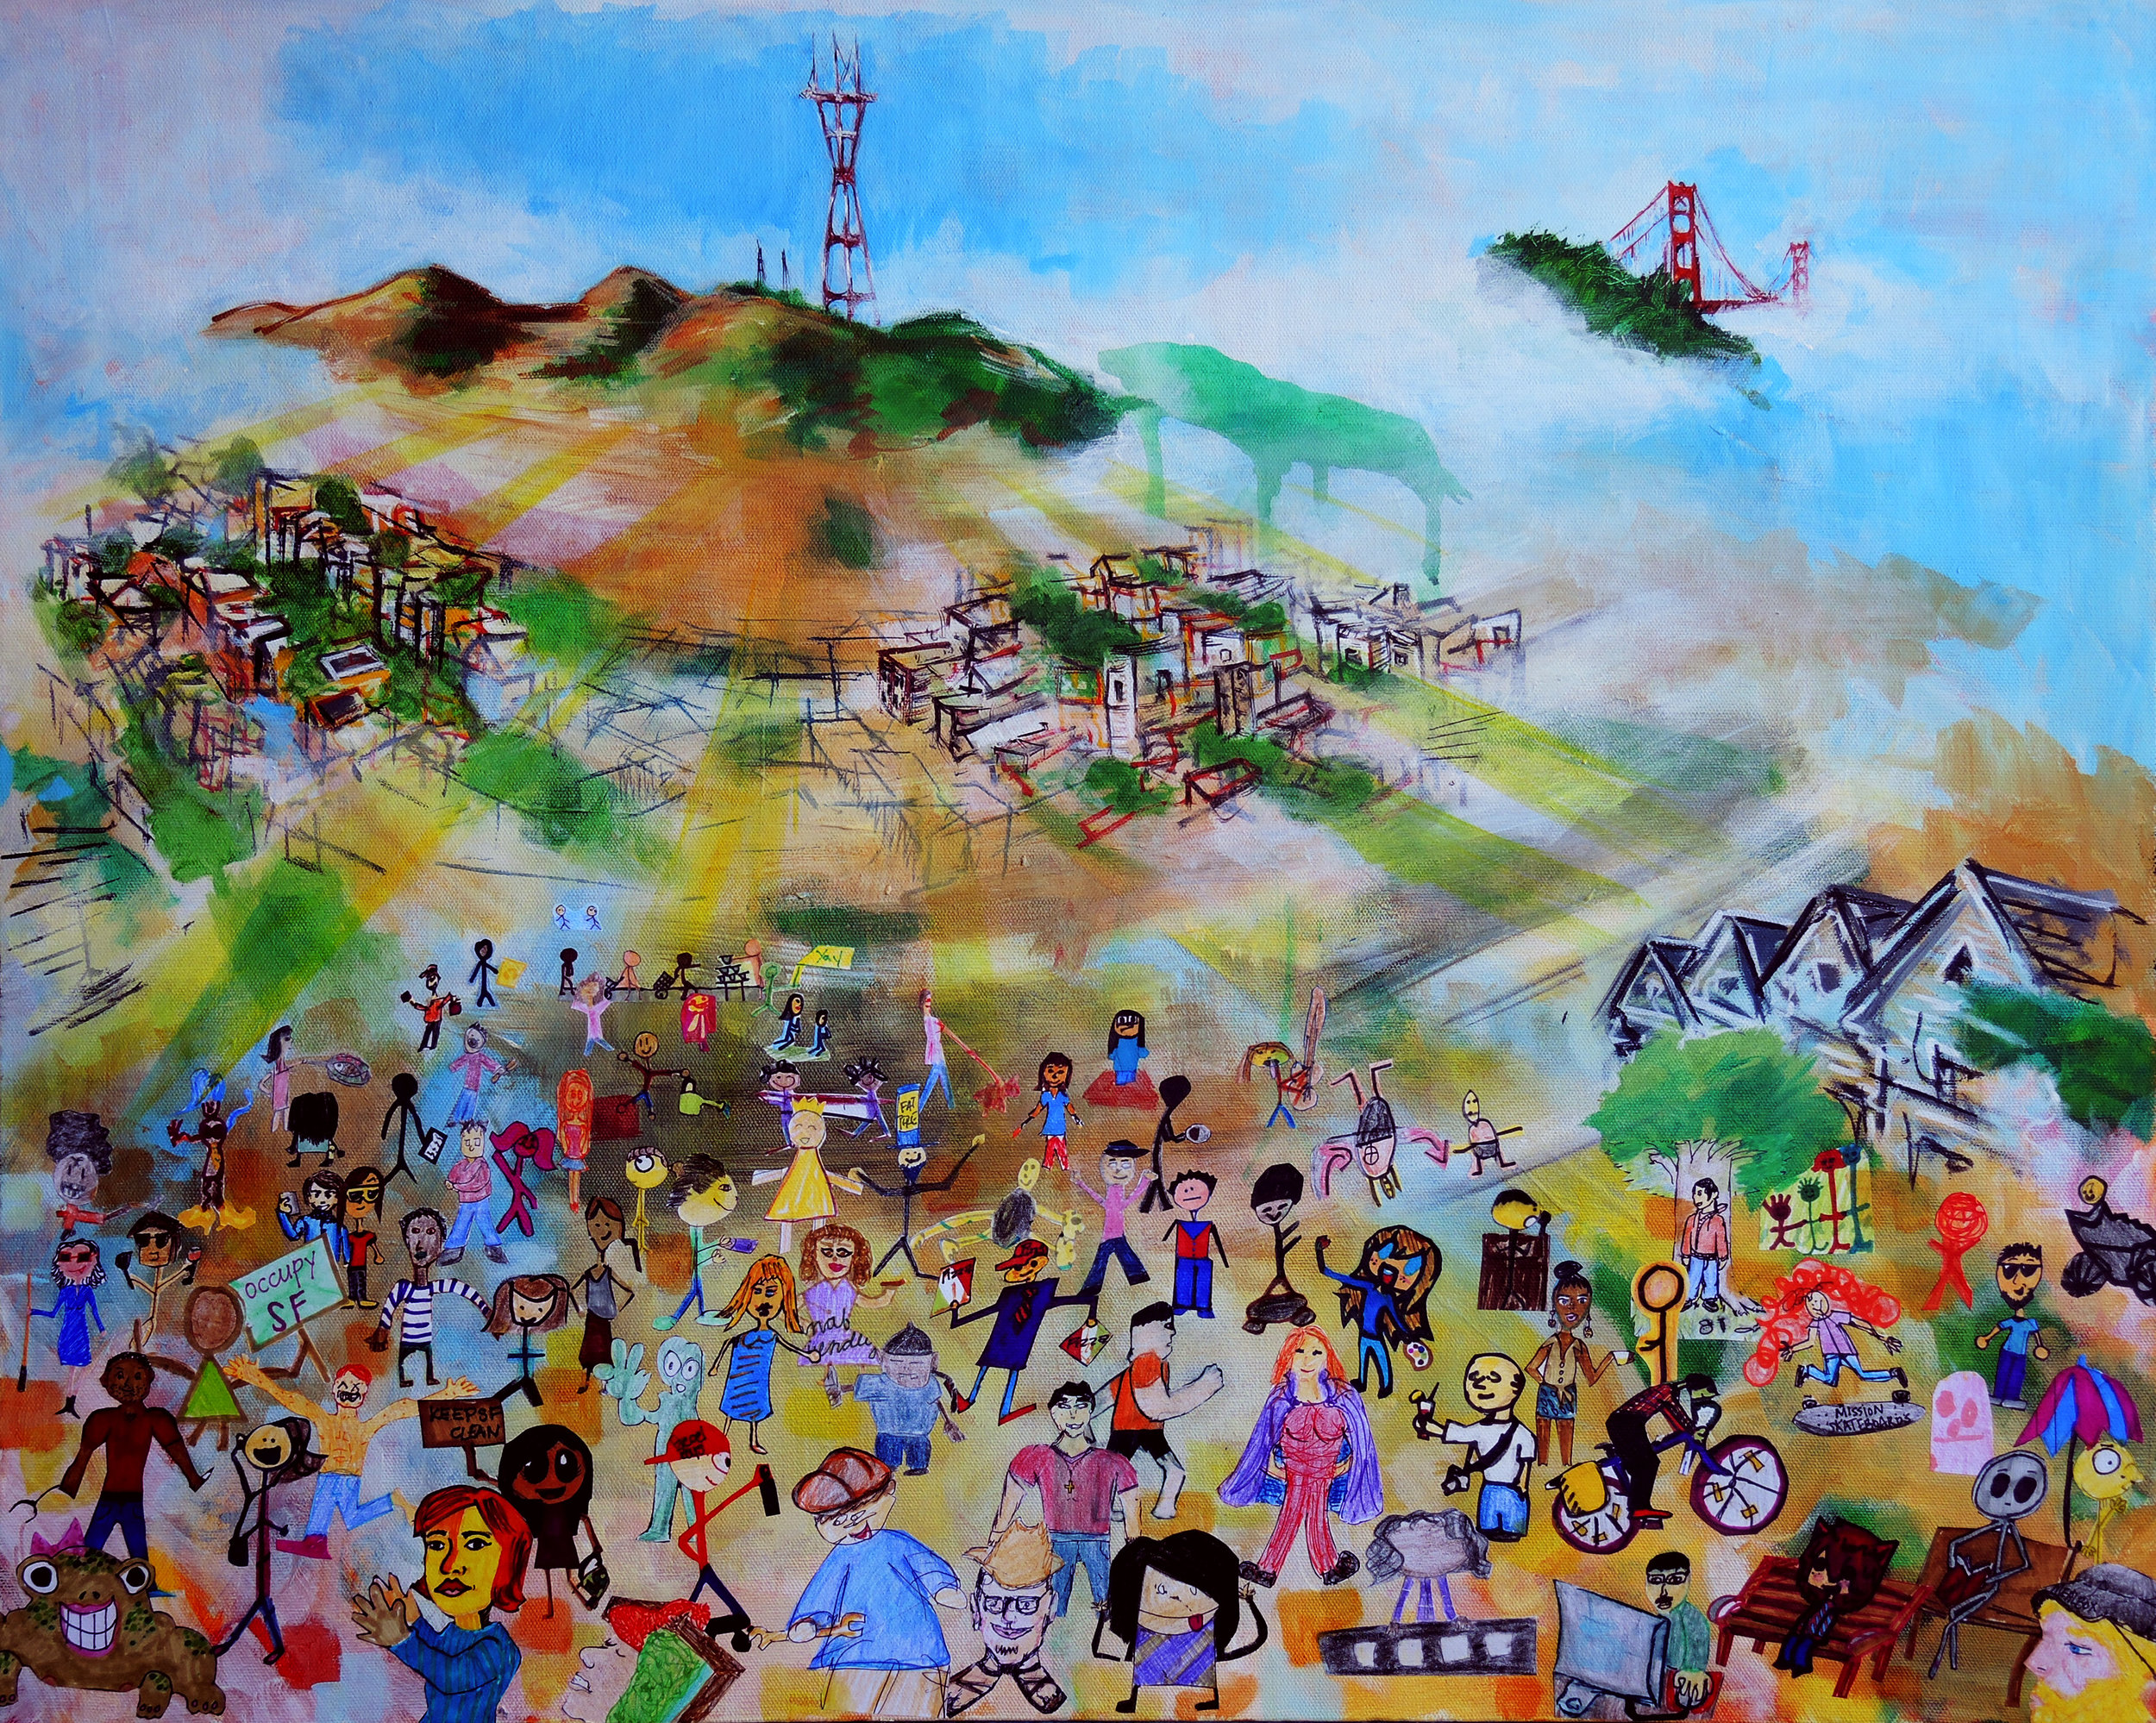 Awesomeness in San Francisco, mixed media and acrylic on canvas, Todd Berman et al.